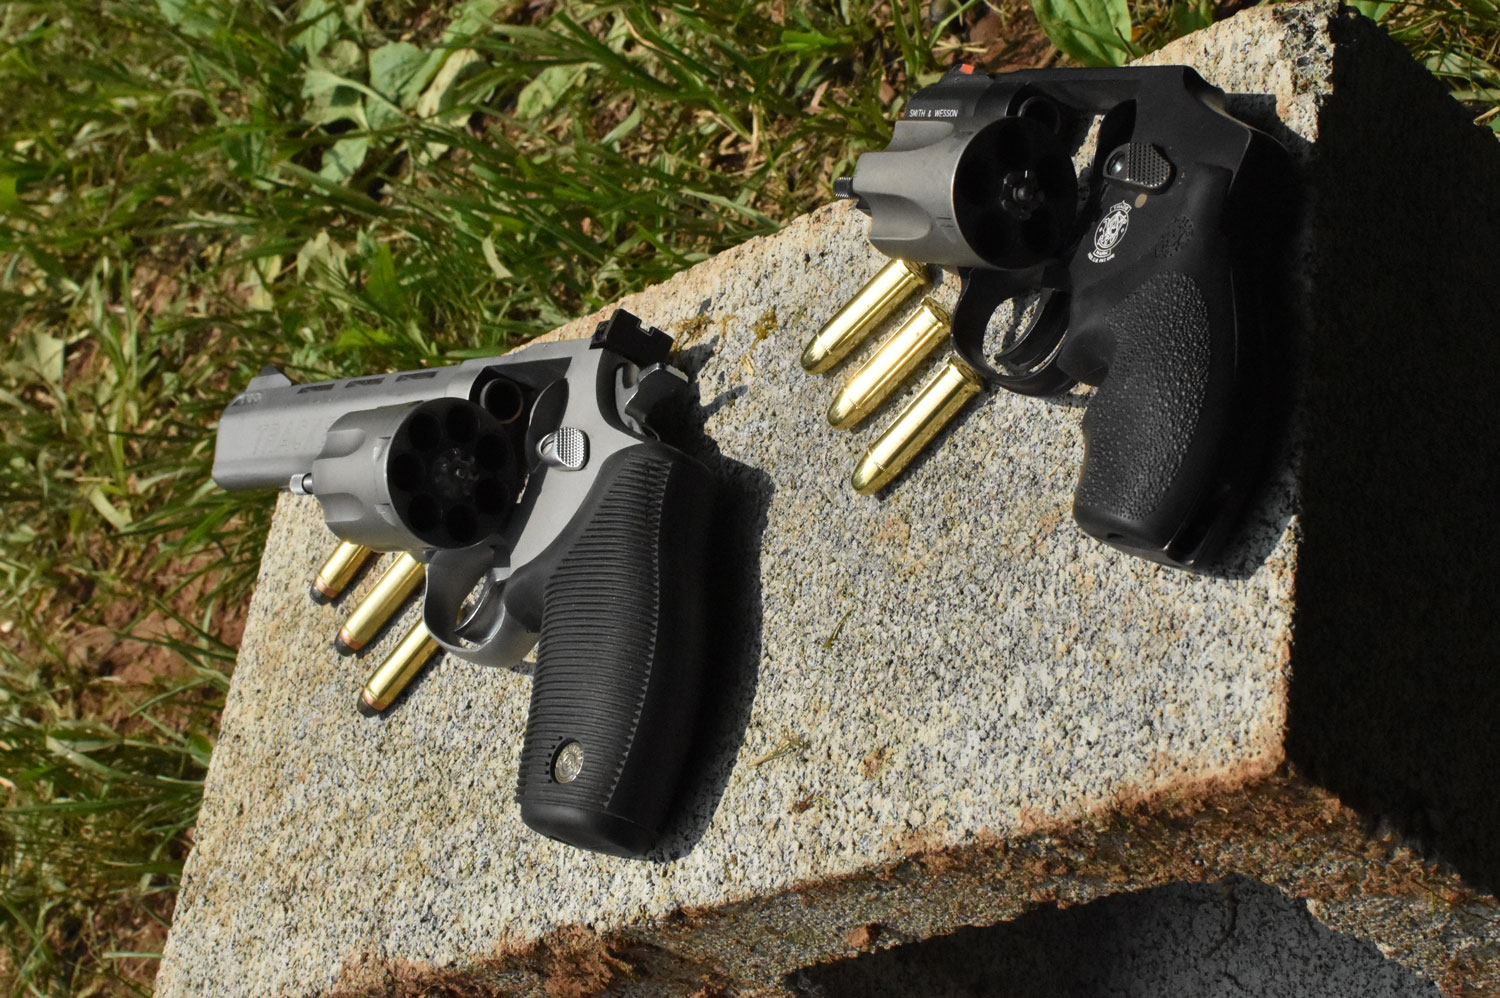 Revolvers at a shooting range